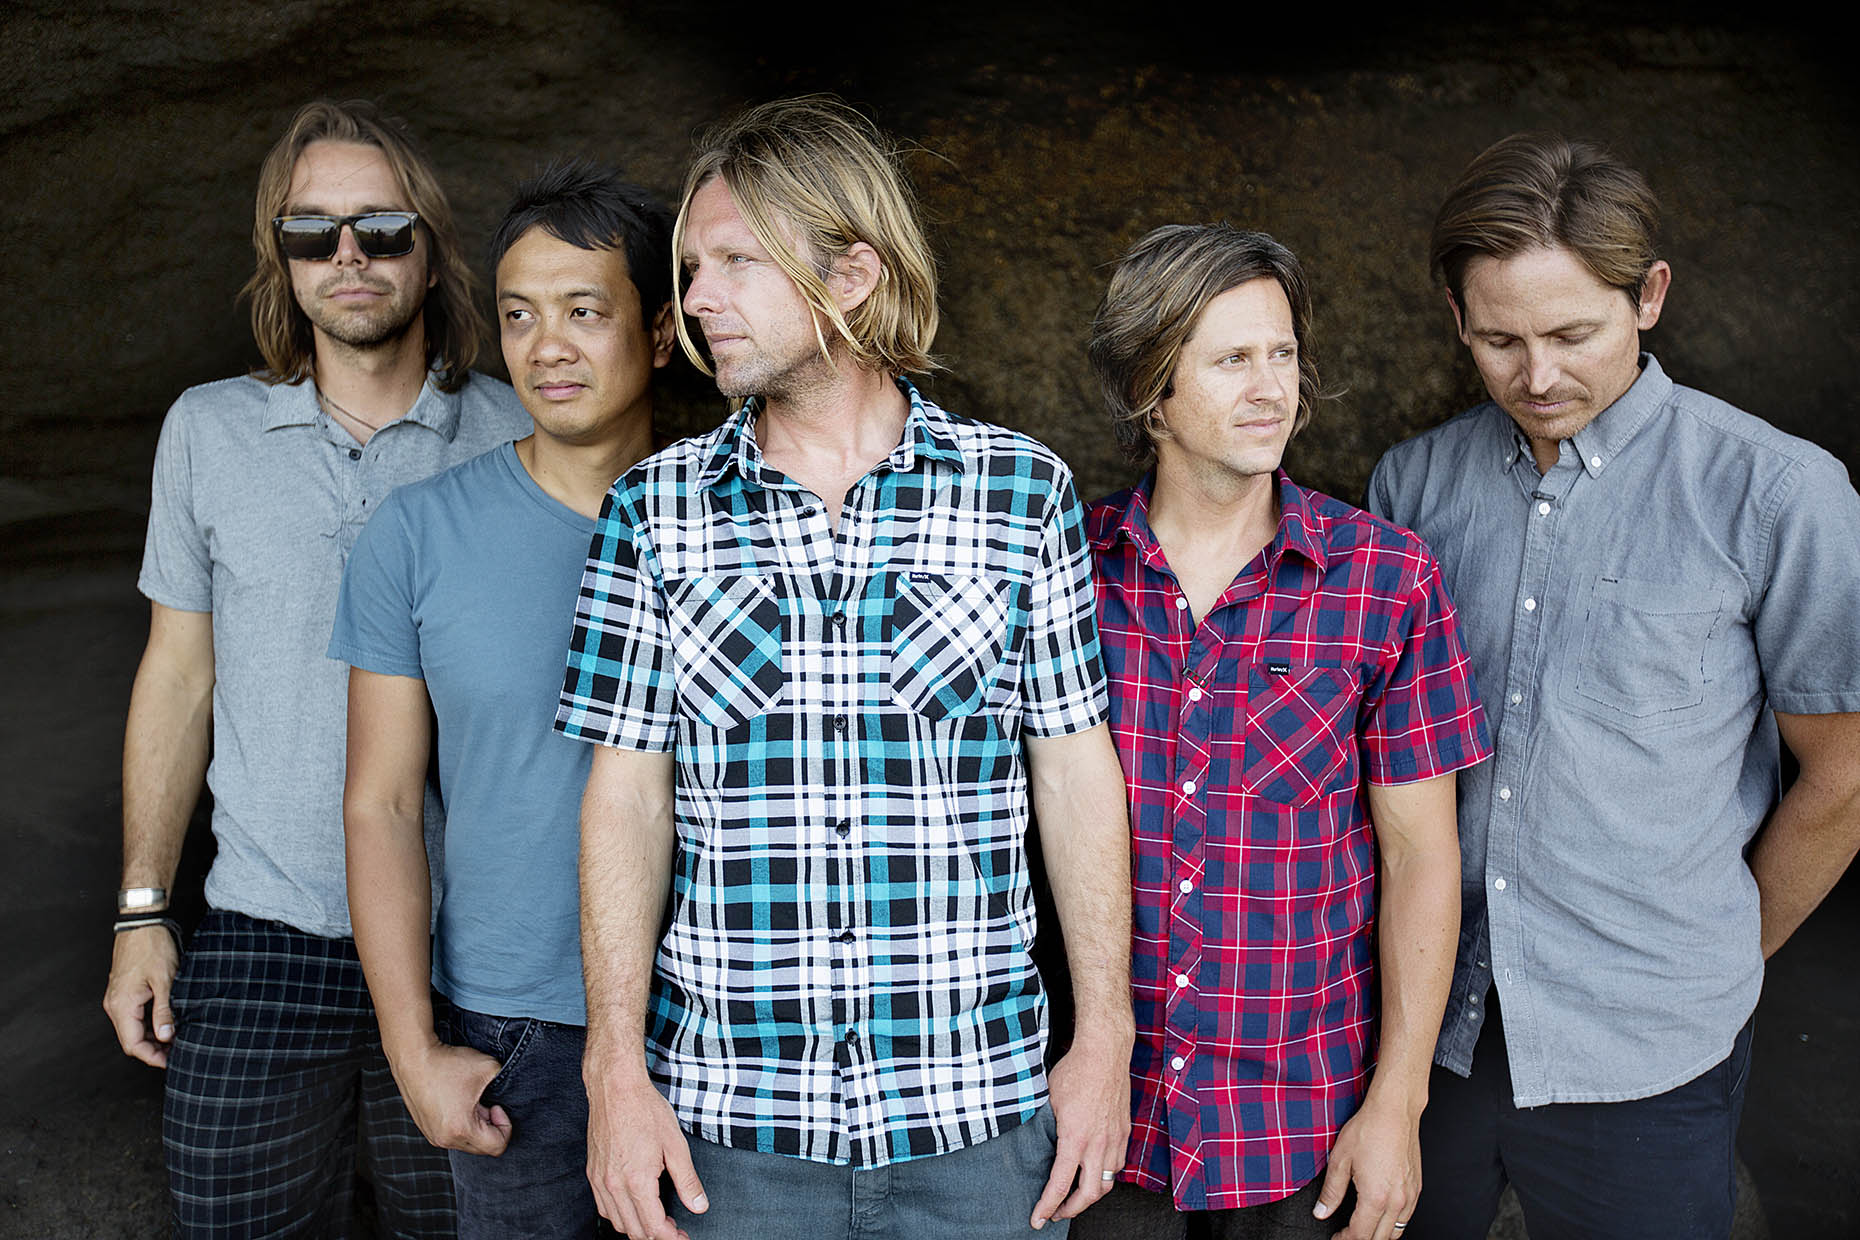 Switchfoot Fading West by Boston based commercial celebrity photographer Brian Nevins